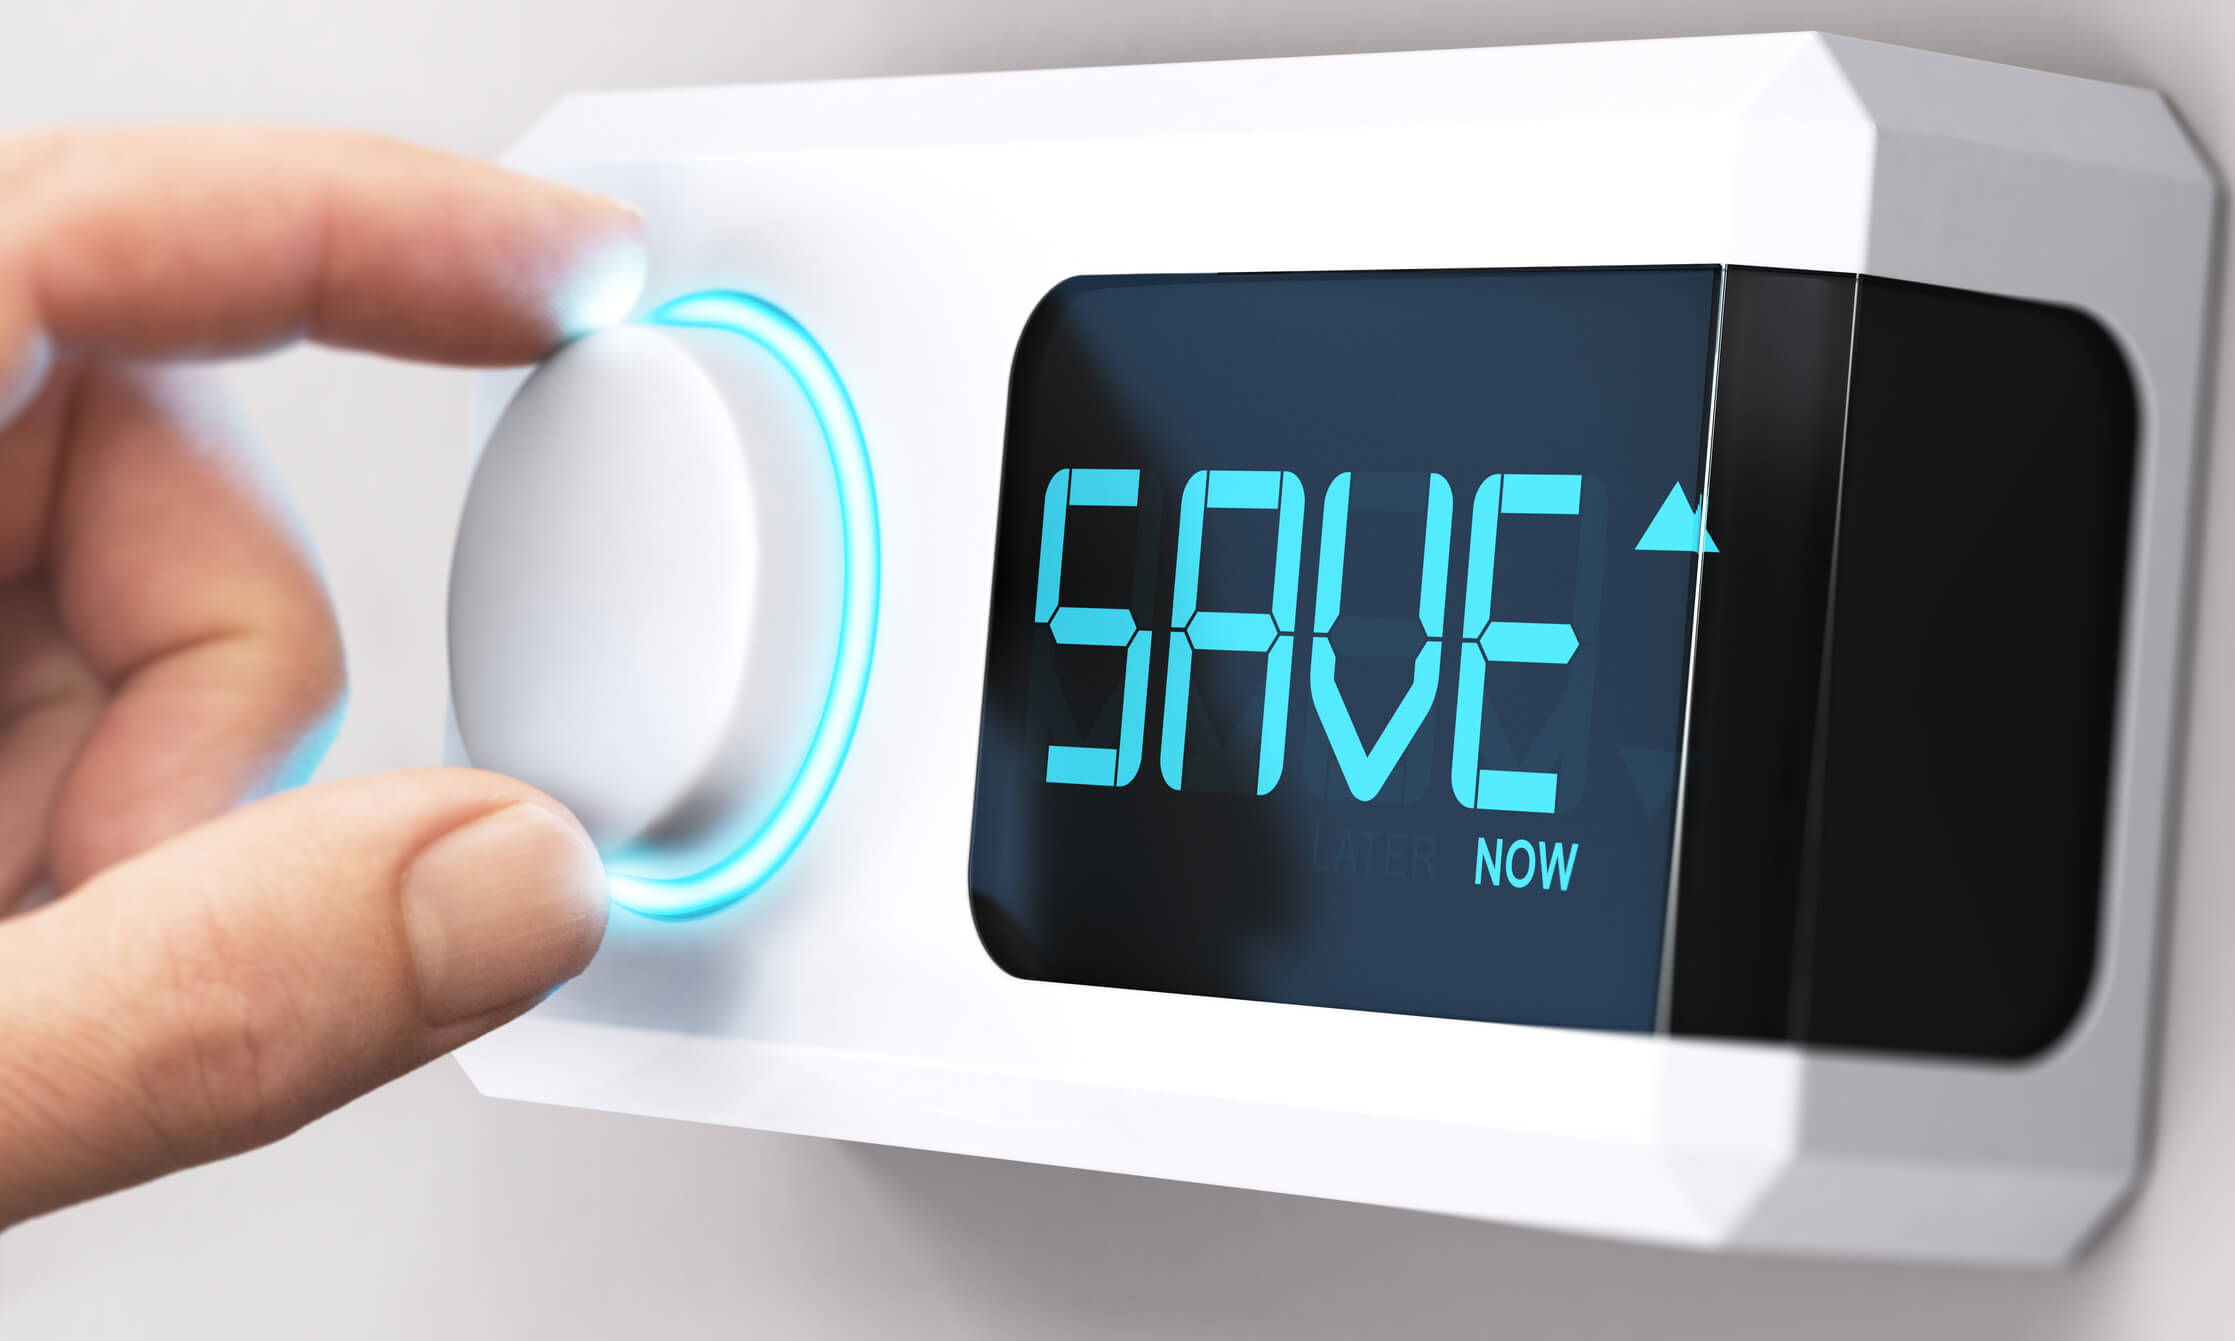 Saving Money; Decrease Energy Consumption